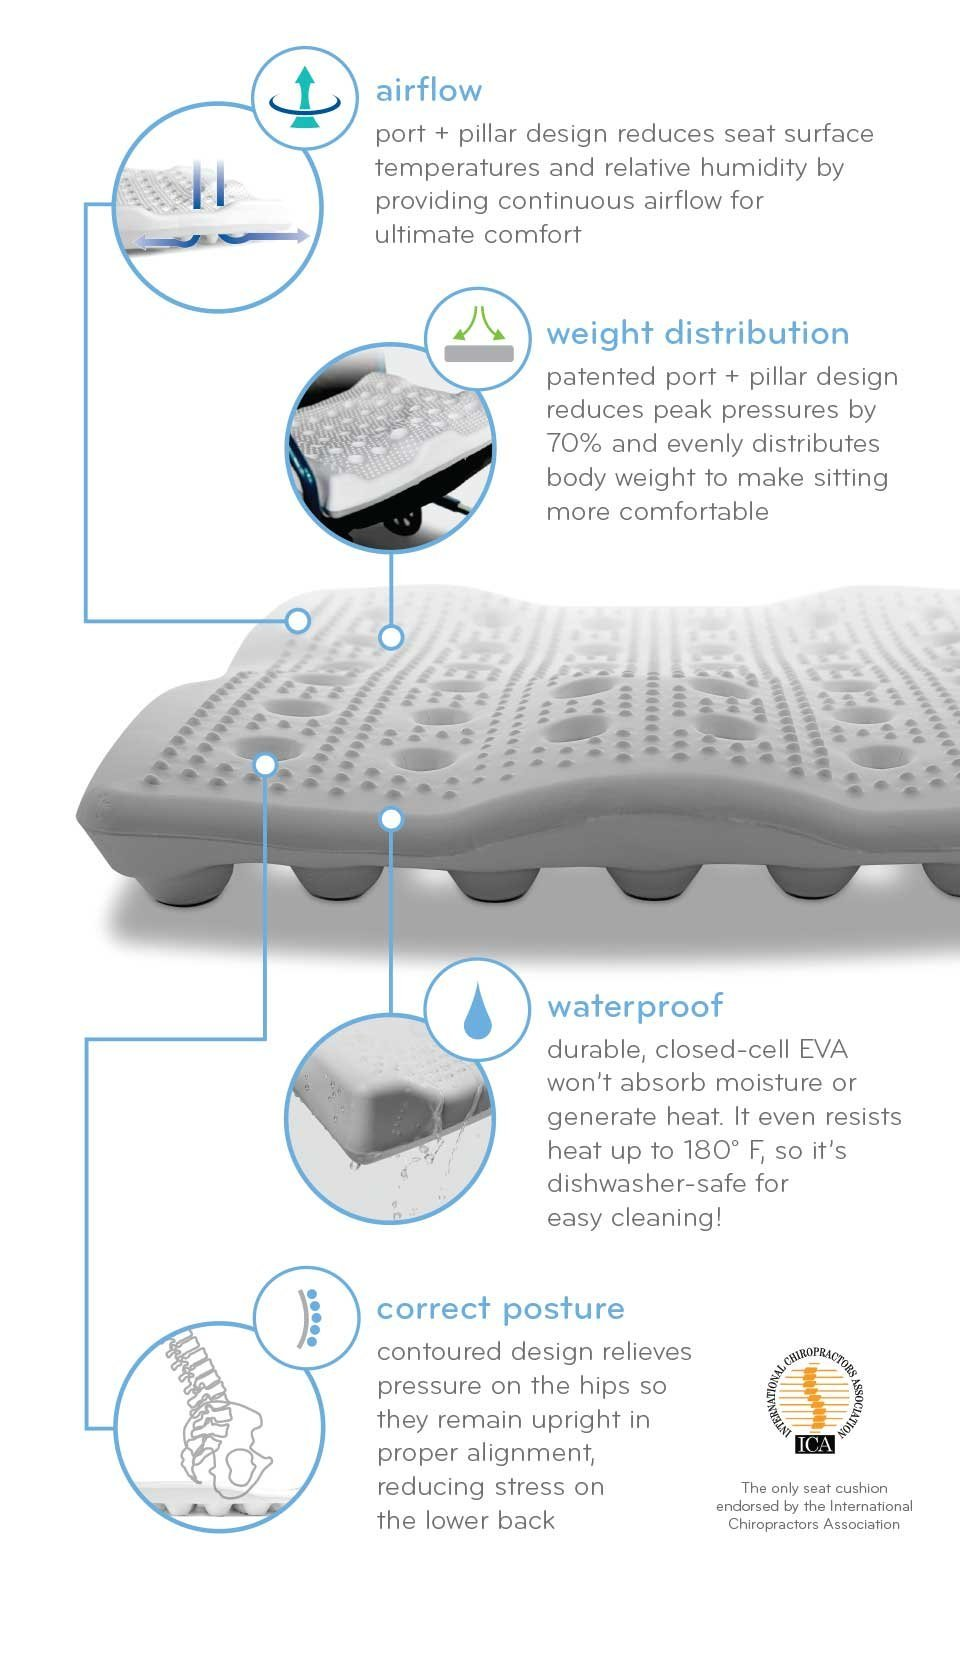 BackJoy Bath Seat Cushion, Slip-Resistant, Improves Posture, Made of Durable EVA Foam, Patented Design, Fits All…